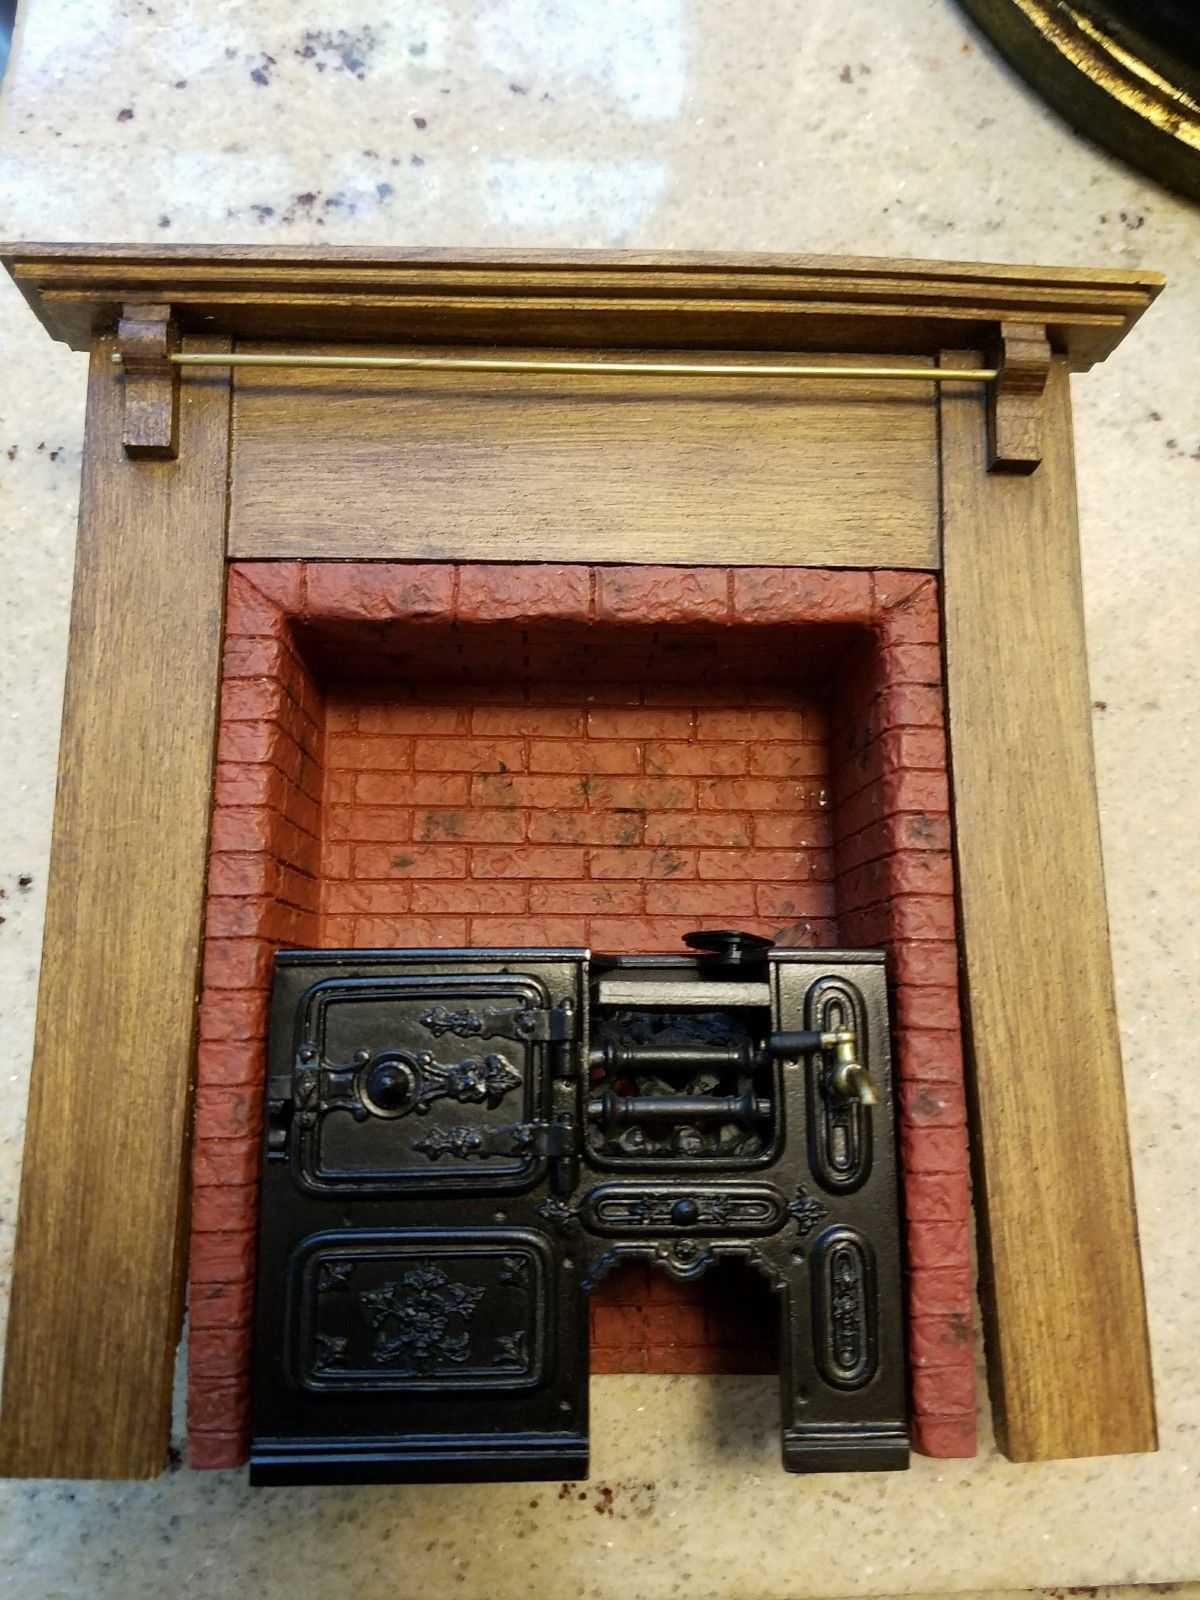 Wonderful Handmade Brick Mantle With Metal Insert For Cooking Metal Insert Is Removable With Many Movable Parts Can Be E Dollhouse Miniatures Fireplace Inserts Handmade Kitchens